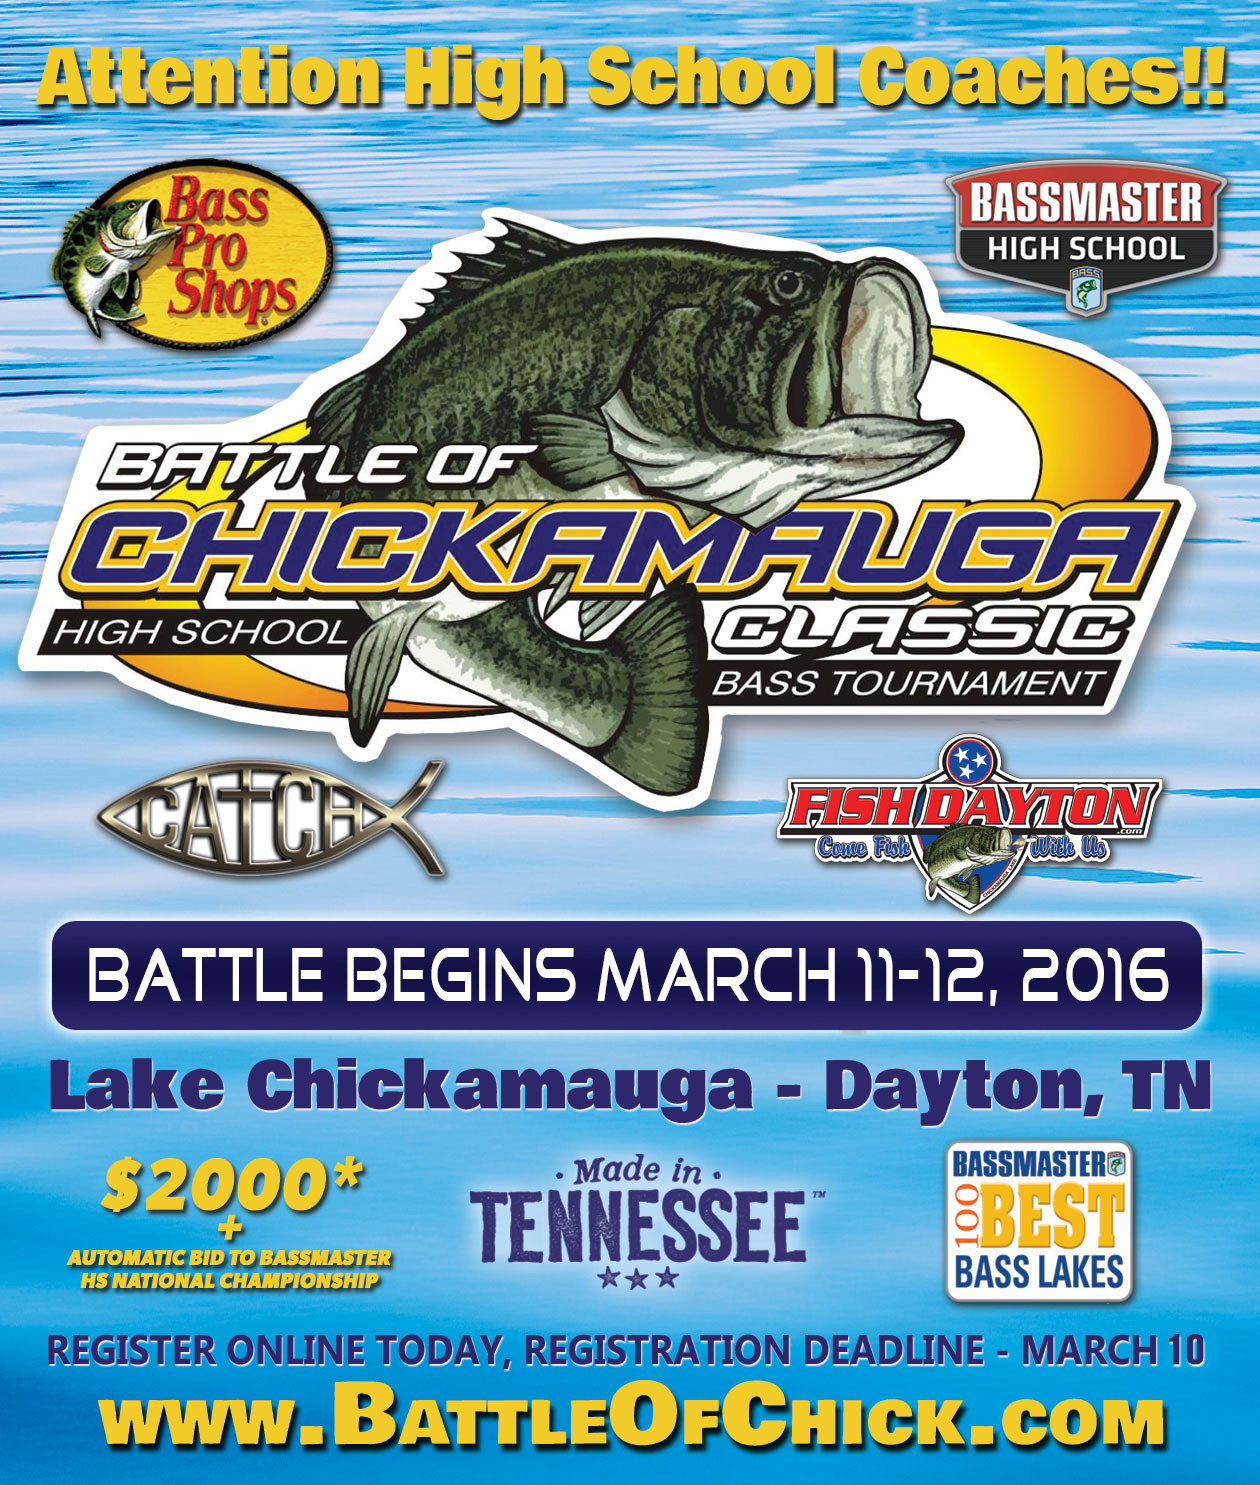 angler-ad-battle-of-chick240